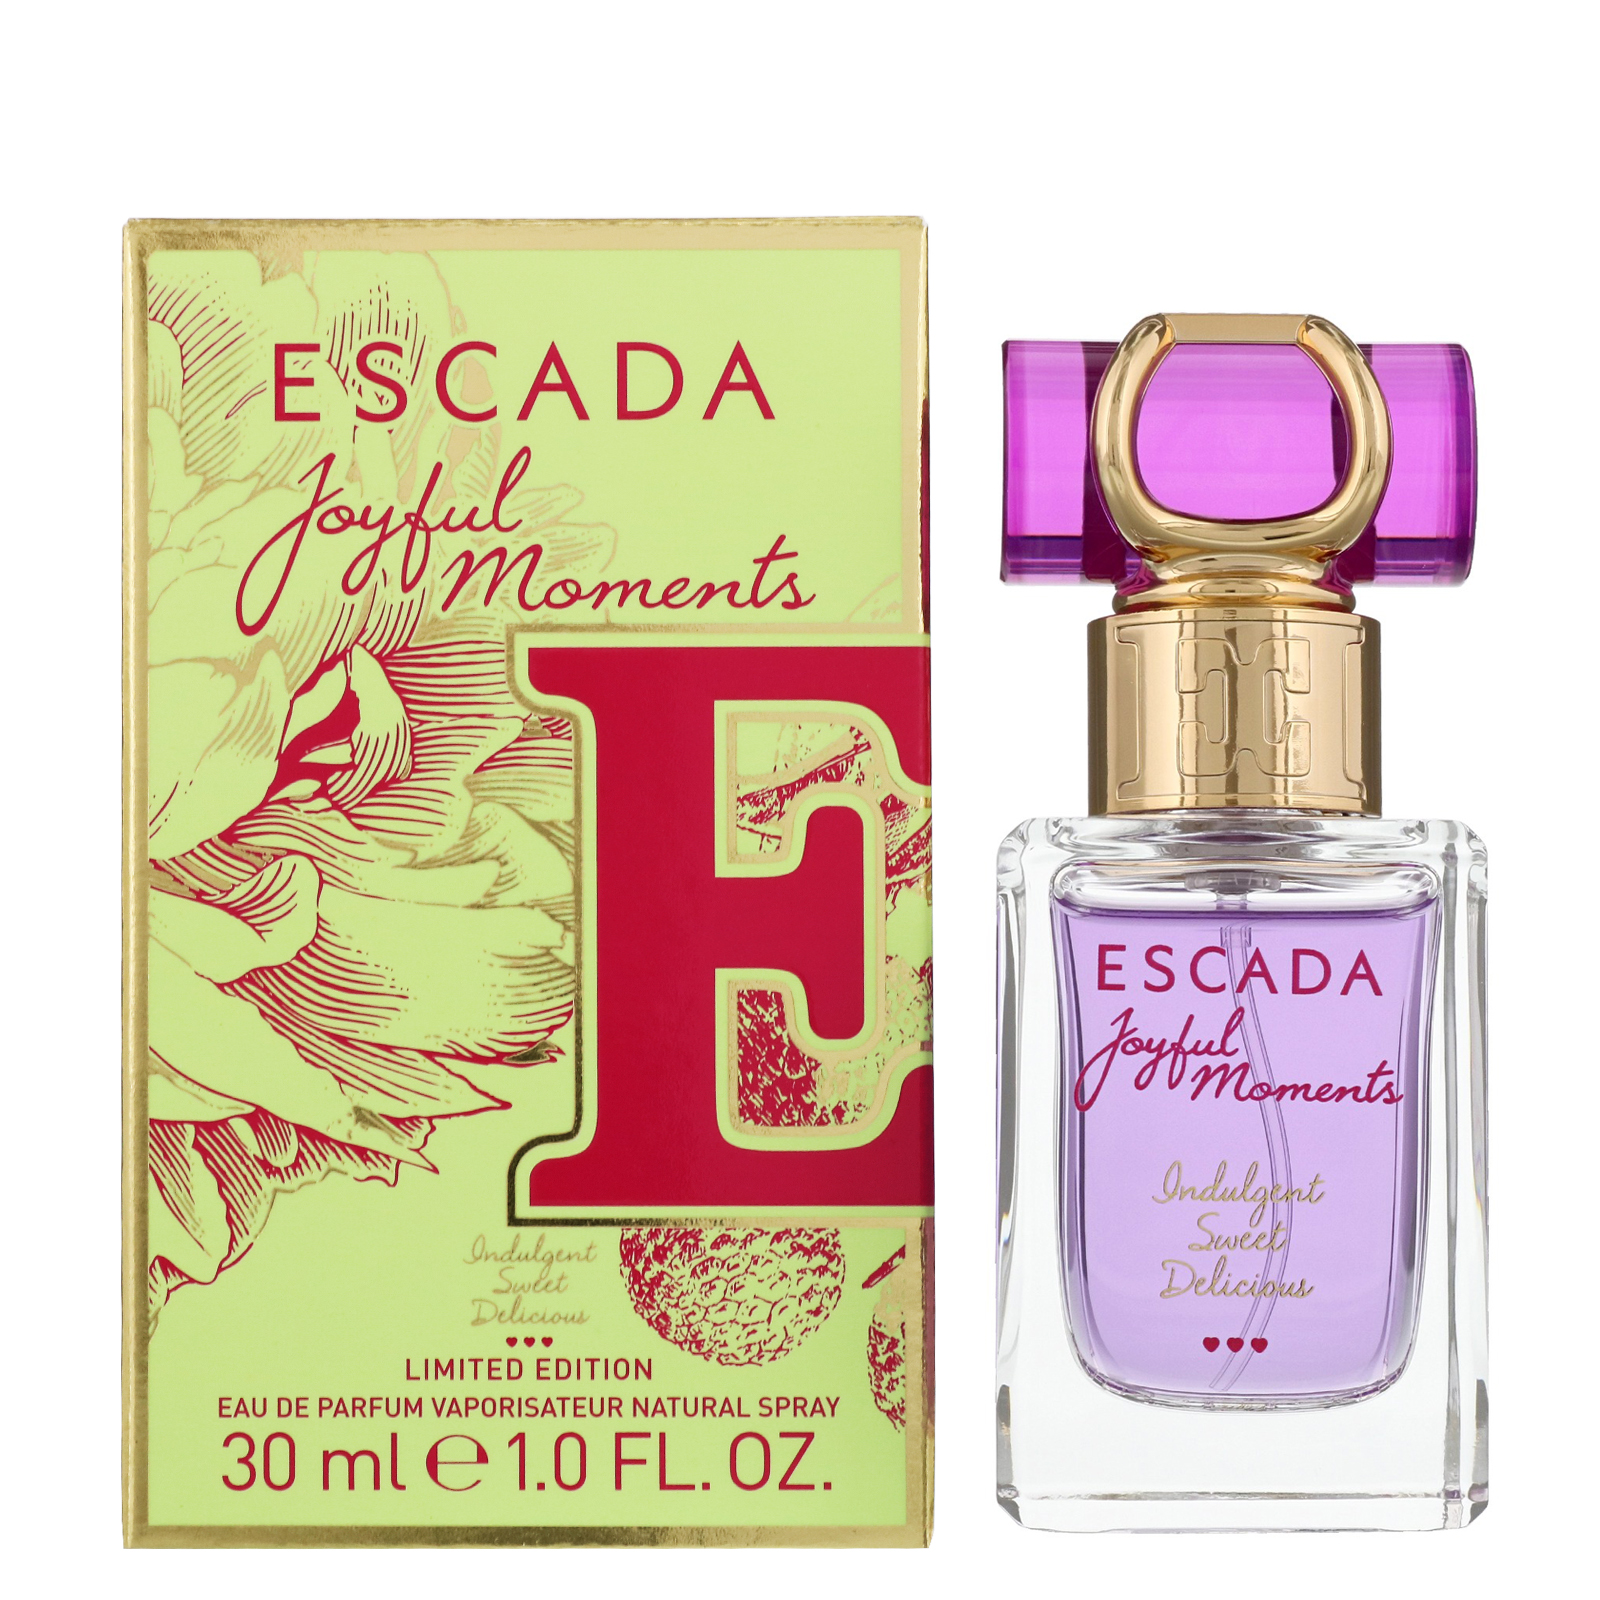 ESCADA Joyful Moments Eau de Parfum Spray 30ml Parfym